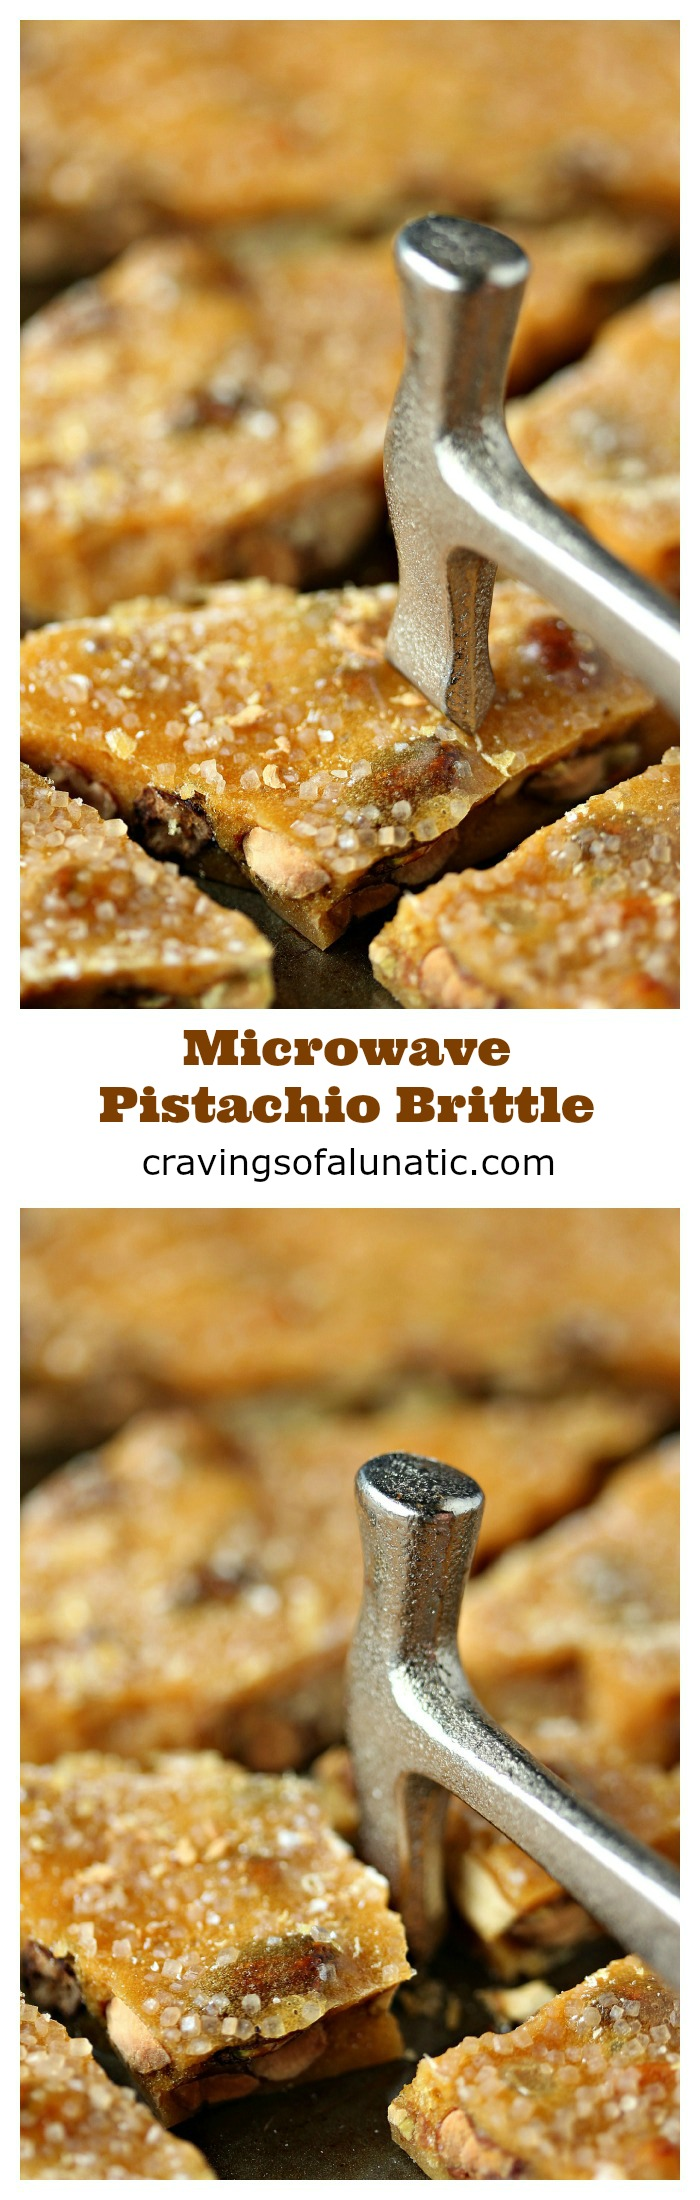 Microwave Pistachio Brittle from cravingsofalunatic.com- There is just something about homemade candy that makes me happy. This pistachio brittle recipe is made in the microwave so it's quick and easy. Less than 10 minutes to make perfect Pistachio Brittle! (@CravingsLunatic)